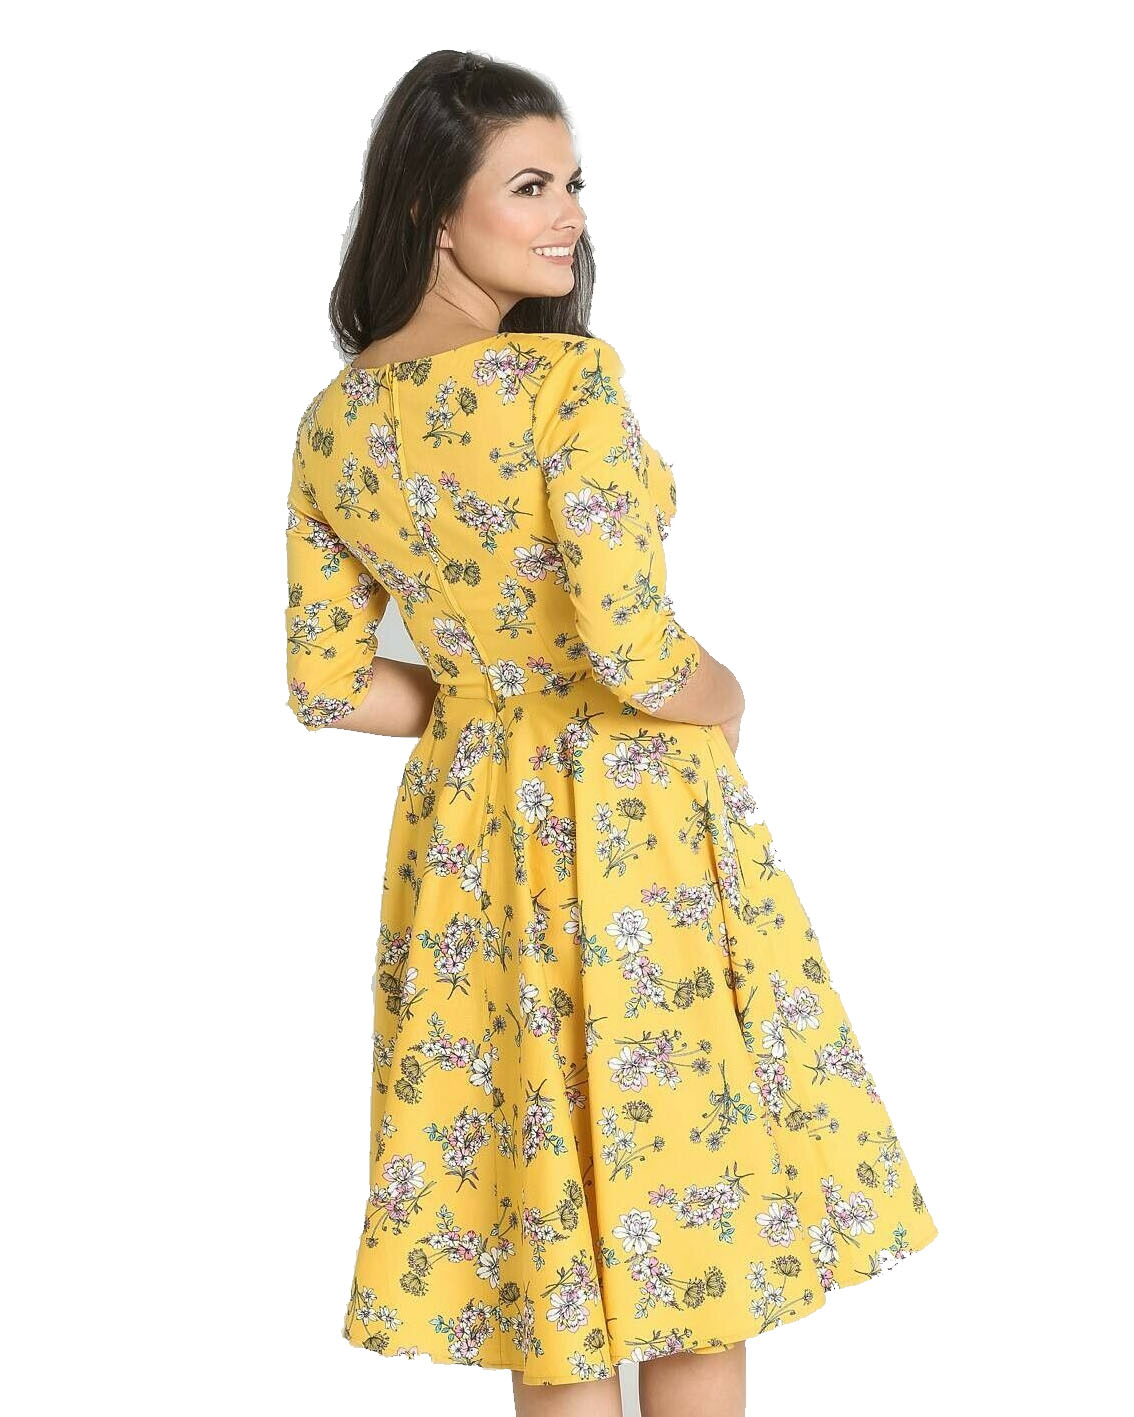 Hell-Bunny-40s-50s-Pin-Up-Vintage-Dress-MURIEL-Flowers-Yellow-All-Sizes thumbnail 13